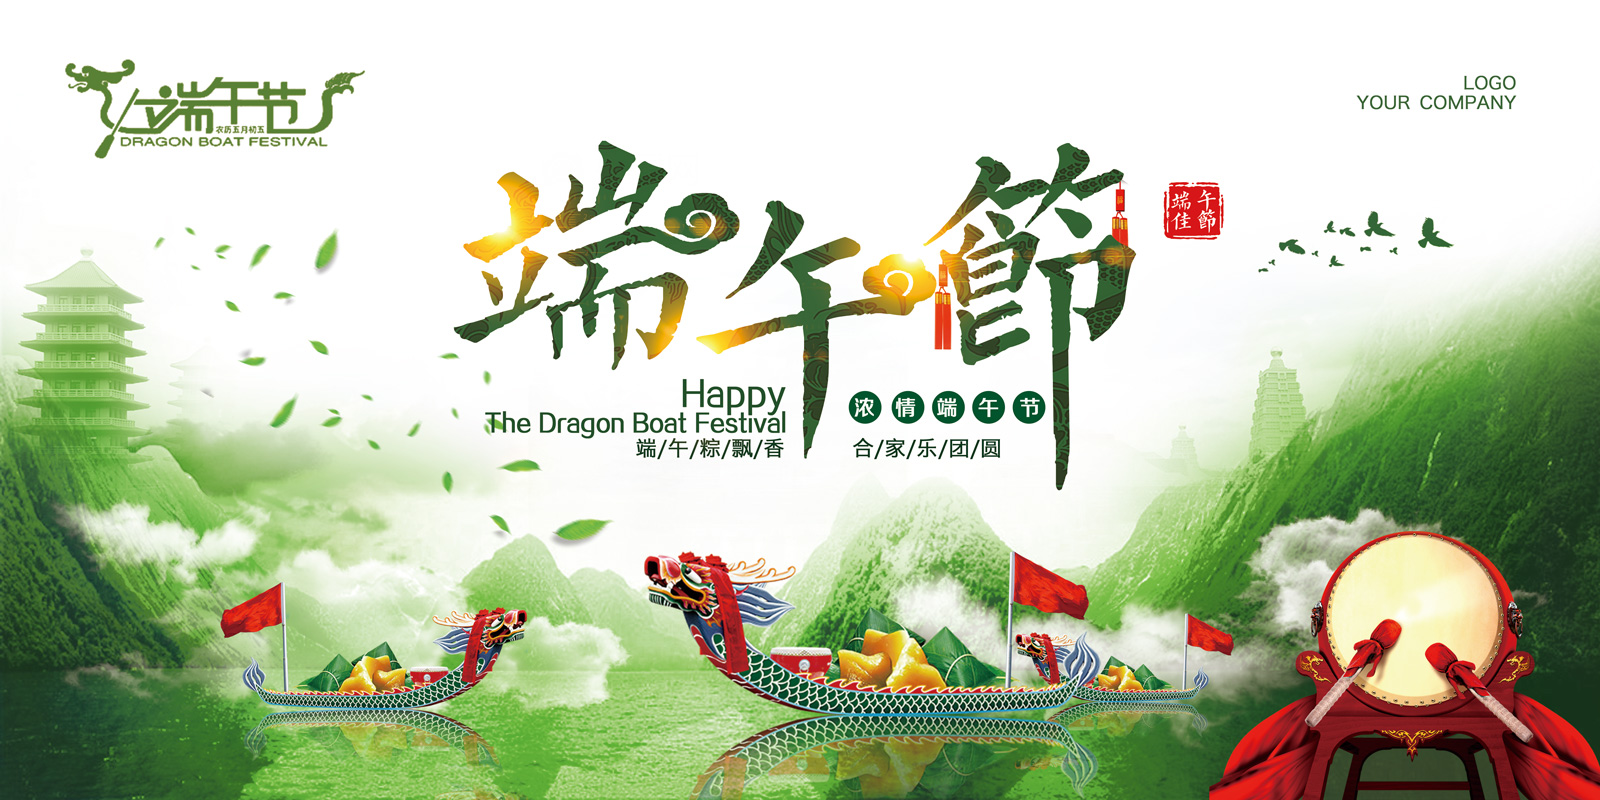 Celebrate China's Dragon Boat Festival PSD File Free Download